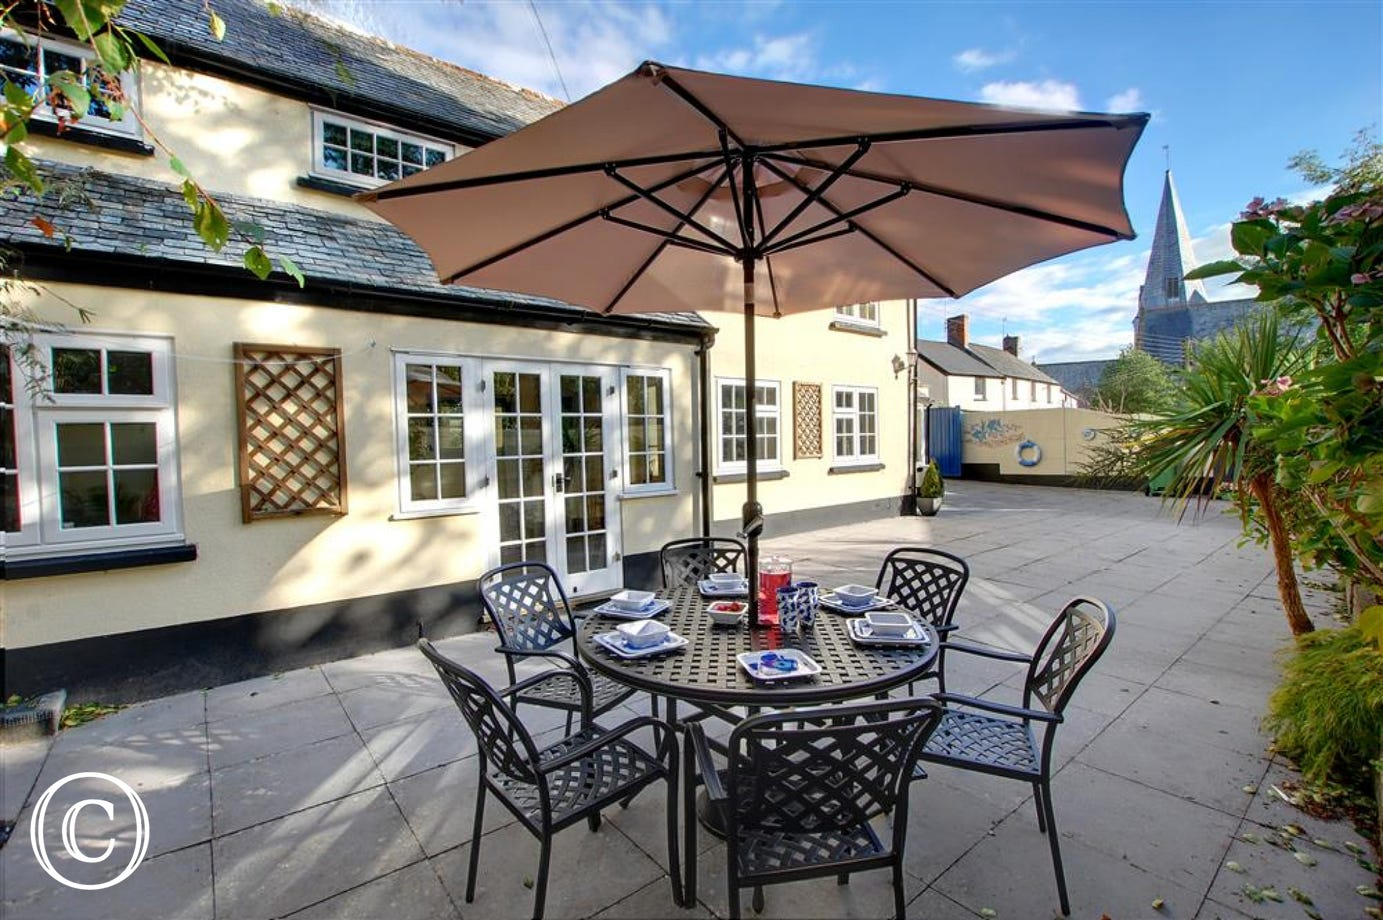 Enjoy al fresco meals together in the courtyard